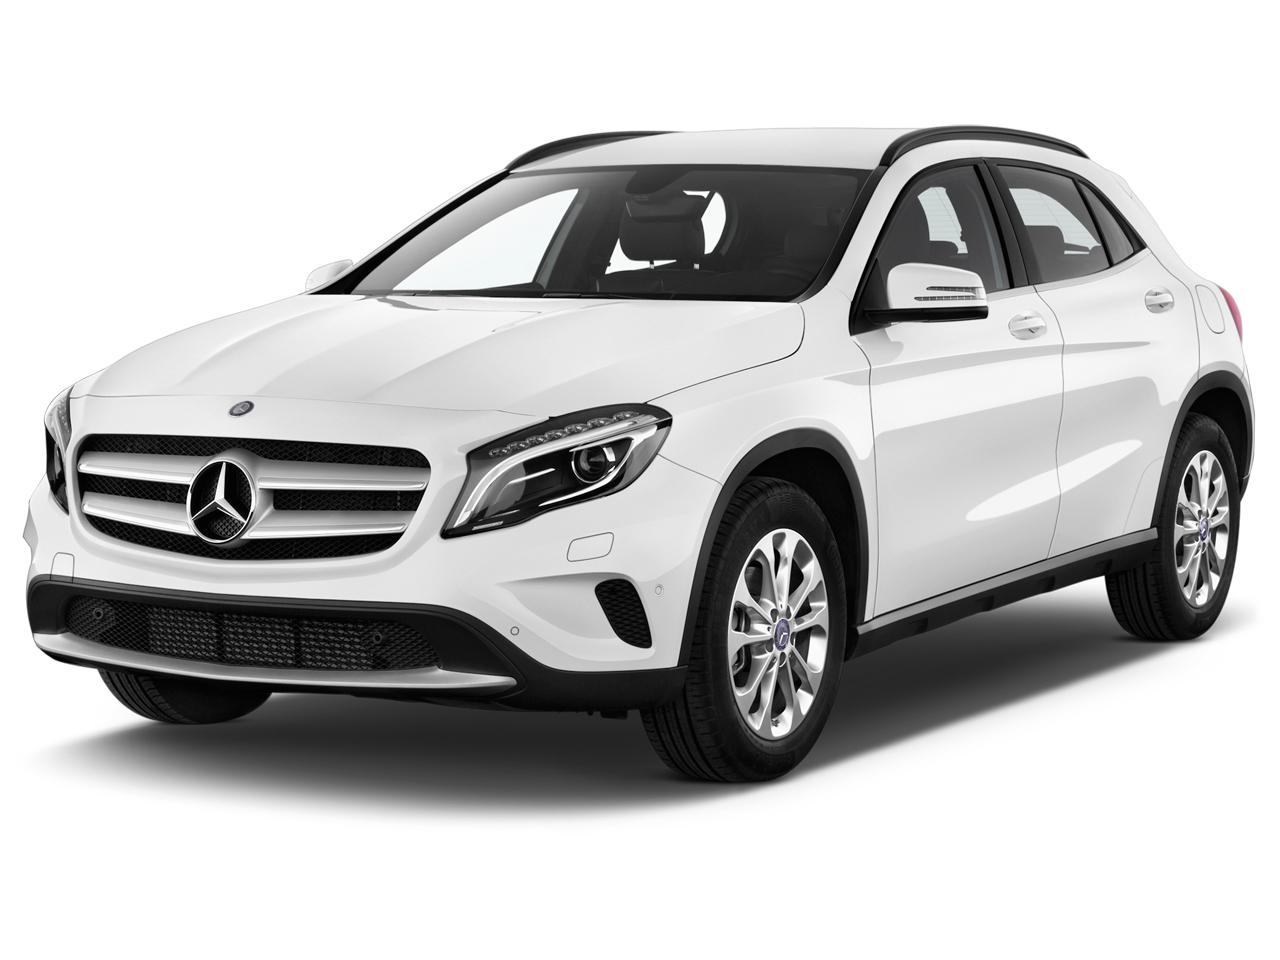 2015 mercedes benz gla class review ratings specs for Mercedes benz range rover price